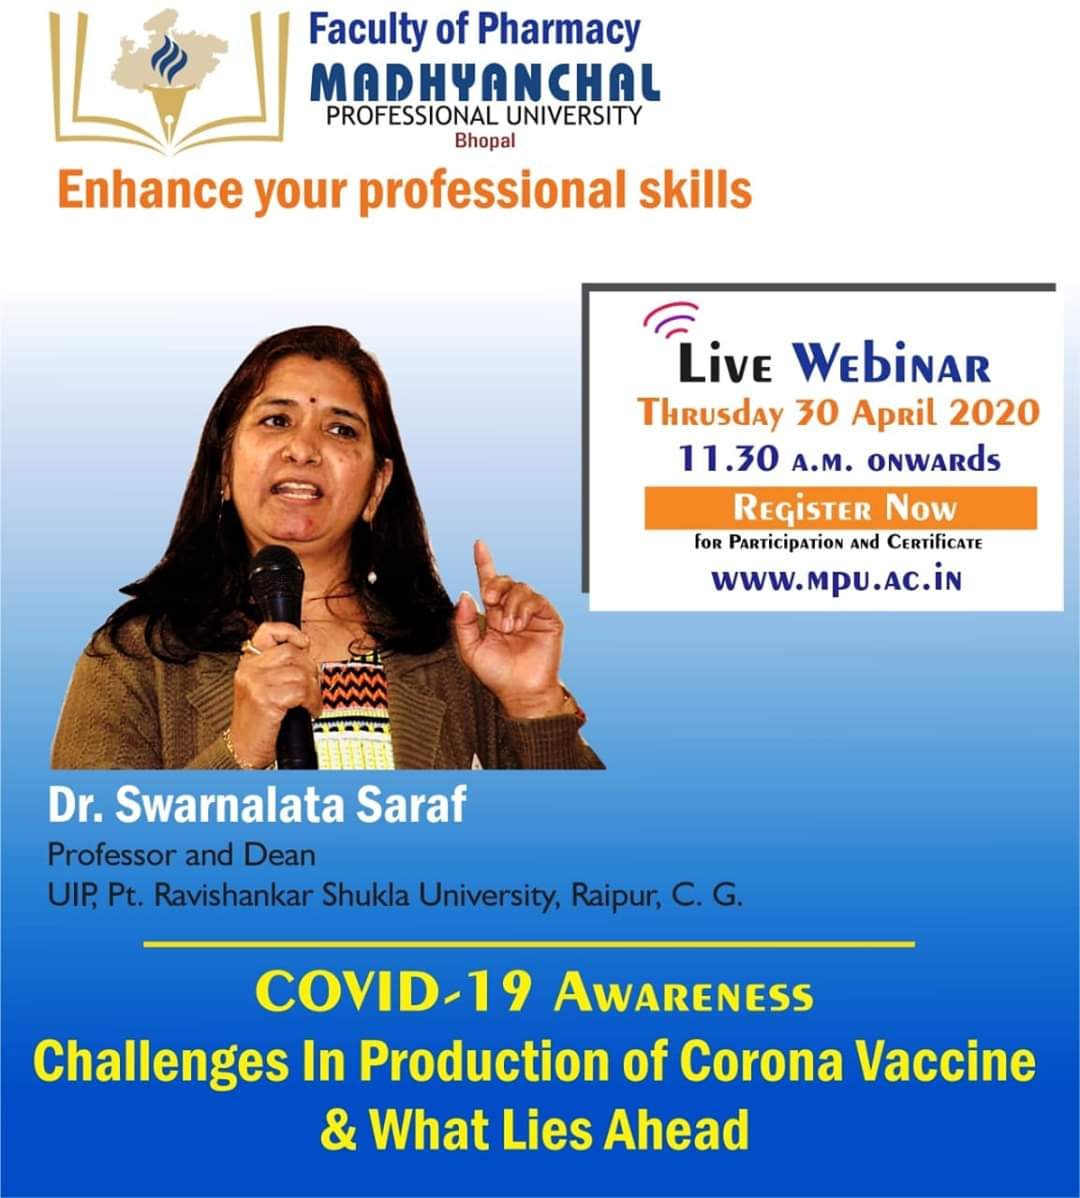 COVID-19 Awareness Challenges in Production of Corona Vaccine & What Lies Ahead by Dr. Dr. Swarnalata Saraf